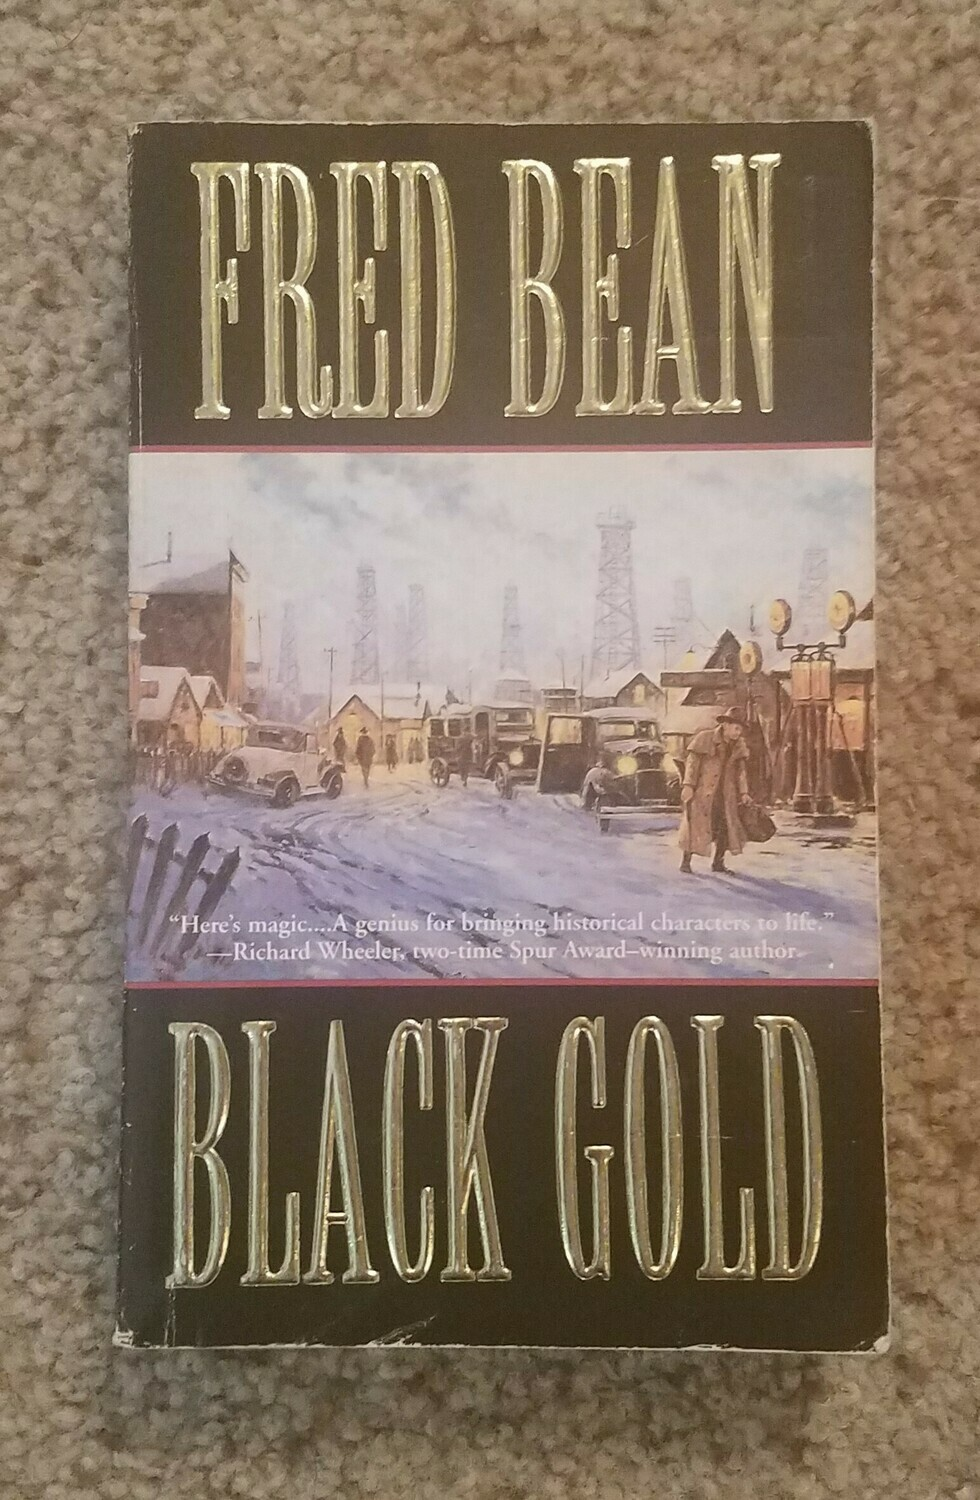 Black Gold by Fred Bean